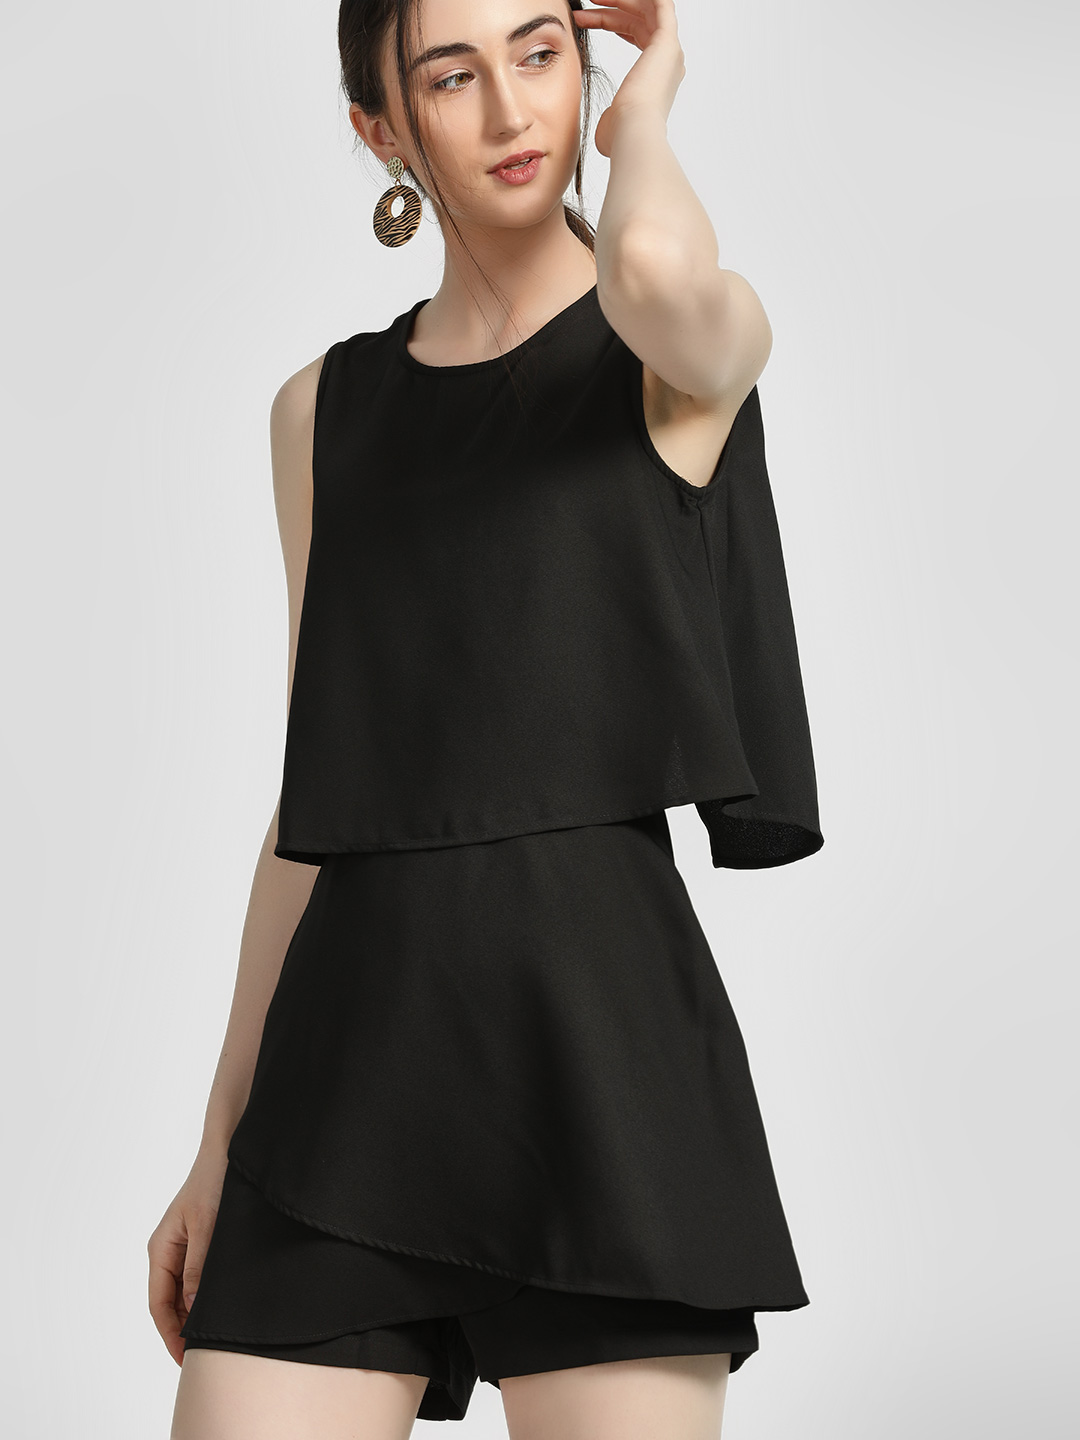 HEY Black Overlay Sleeveless Playsuit 1